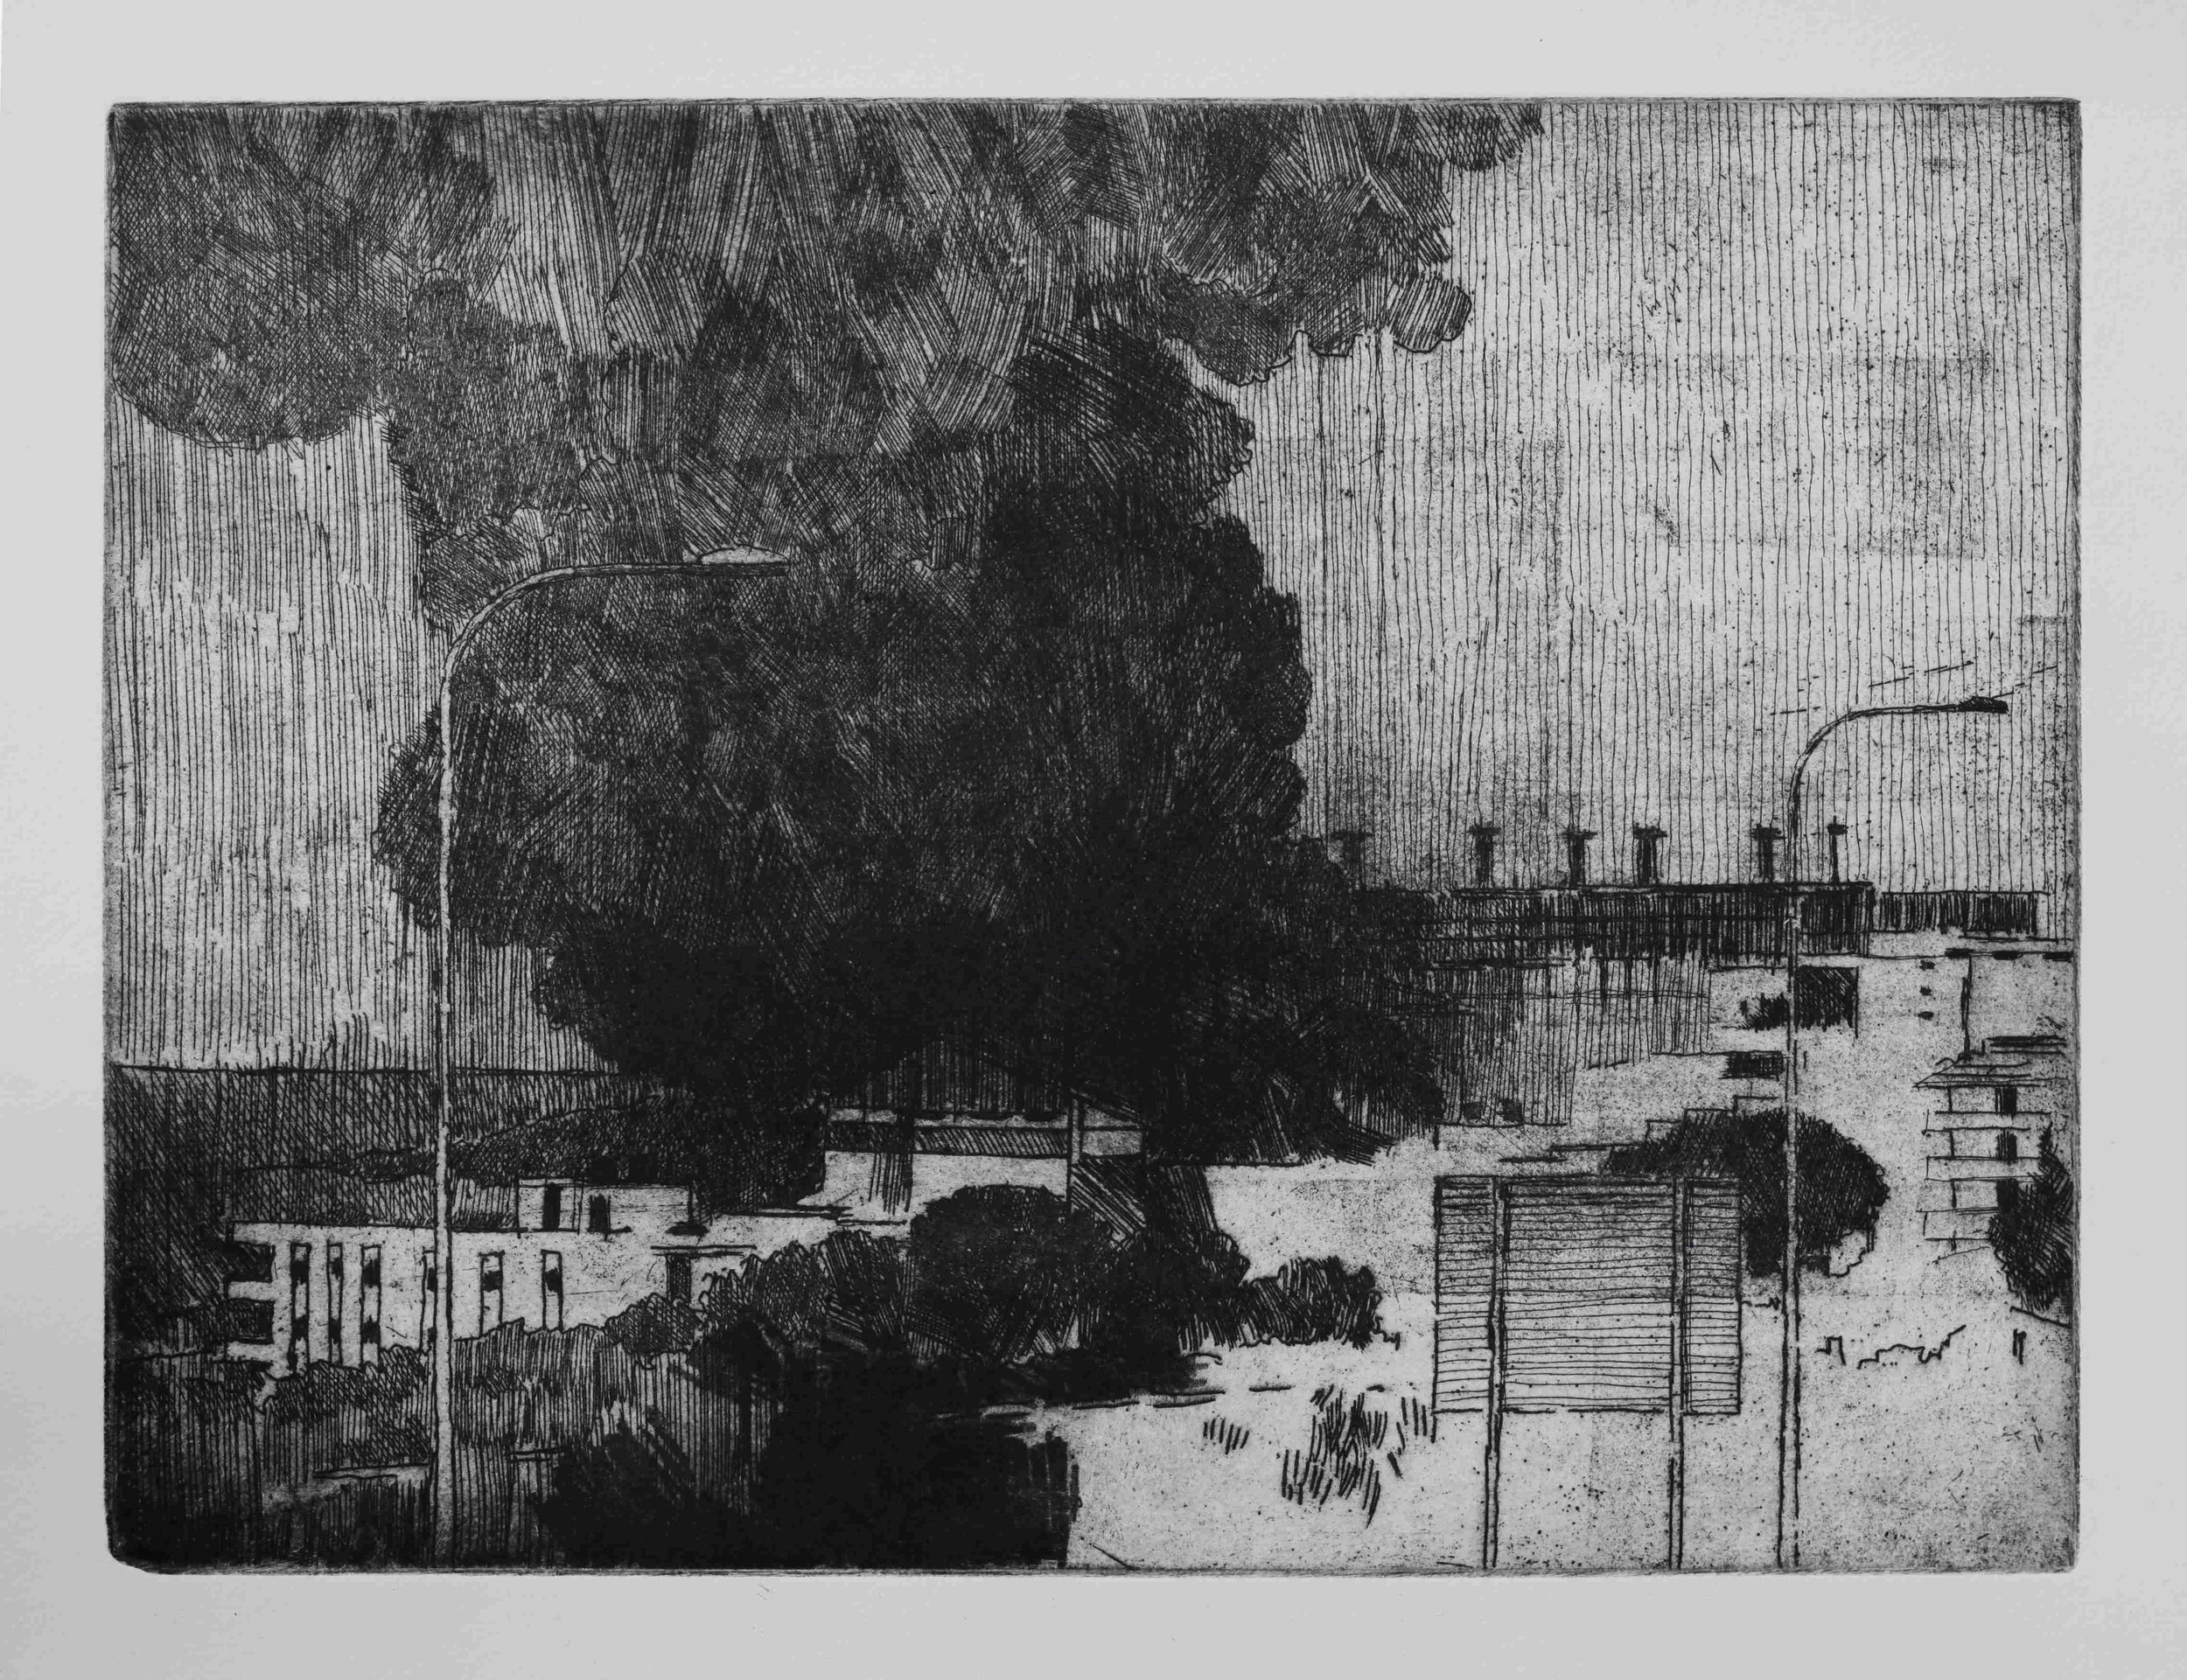 July War 2006 (Beirut, explosion), 2007, hard ground copper etching on Hahnemuhle paper, 37cm x 42.5cm, edition of 10 (2017)